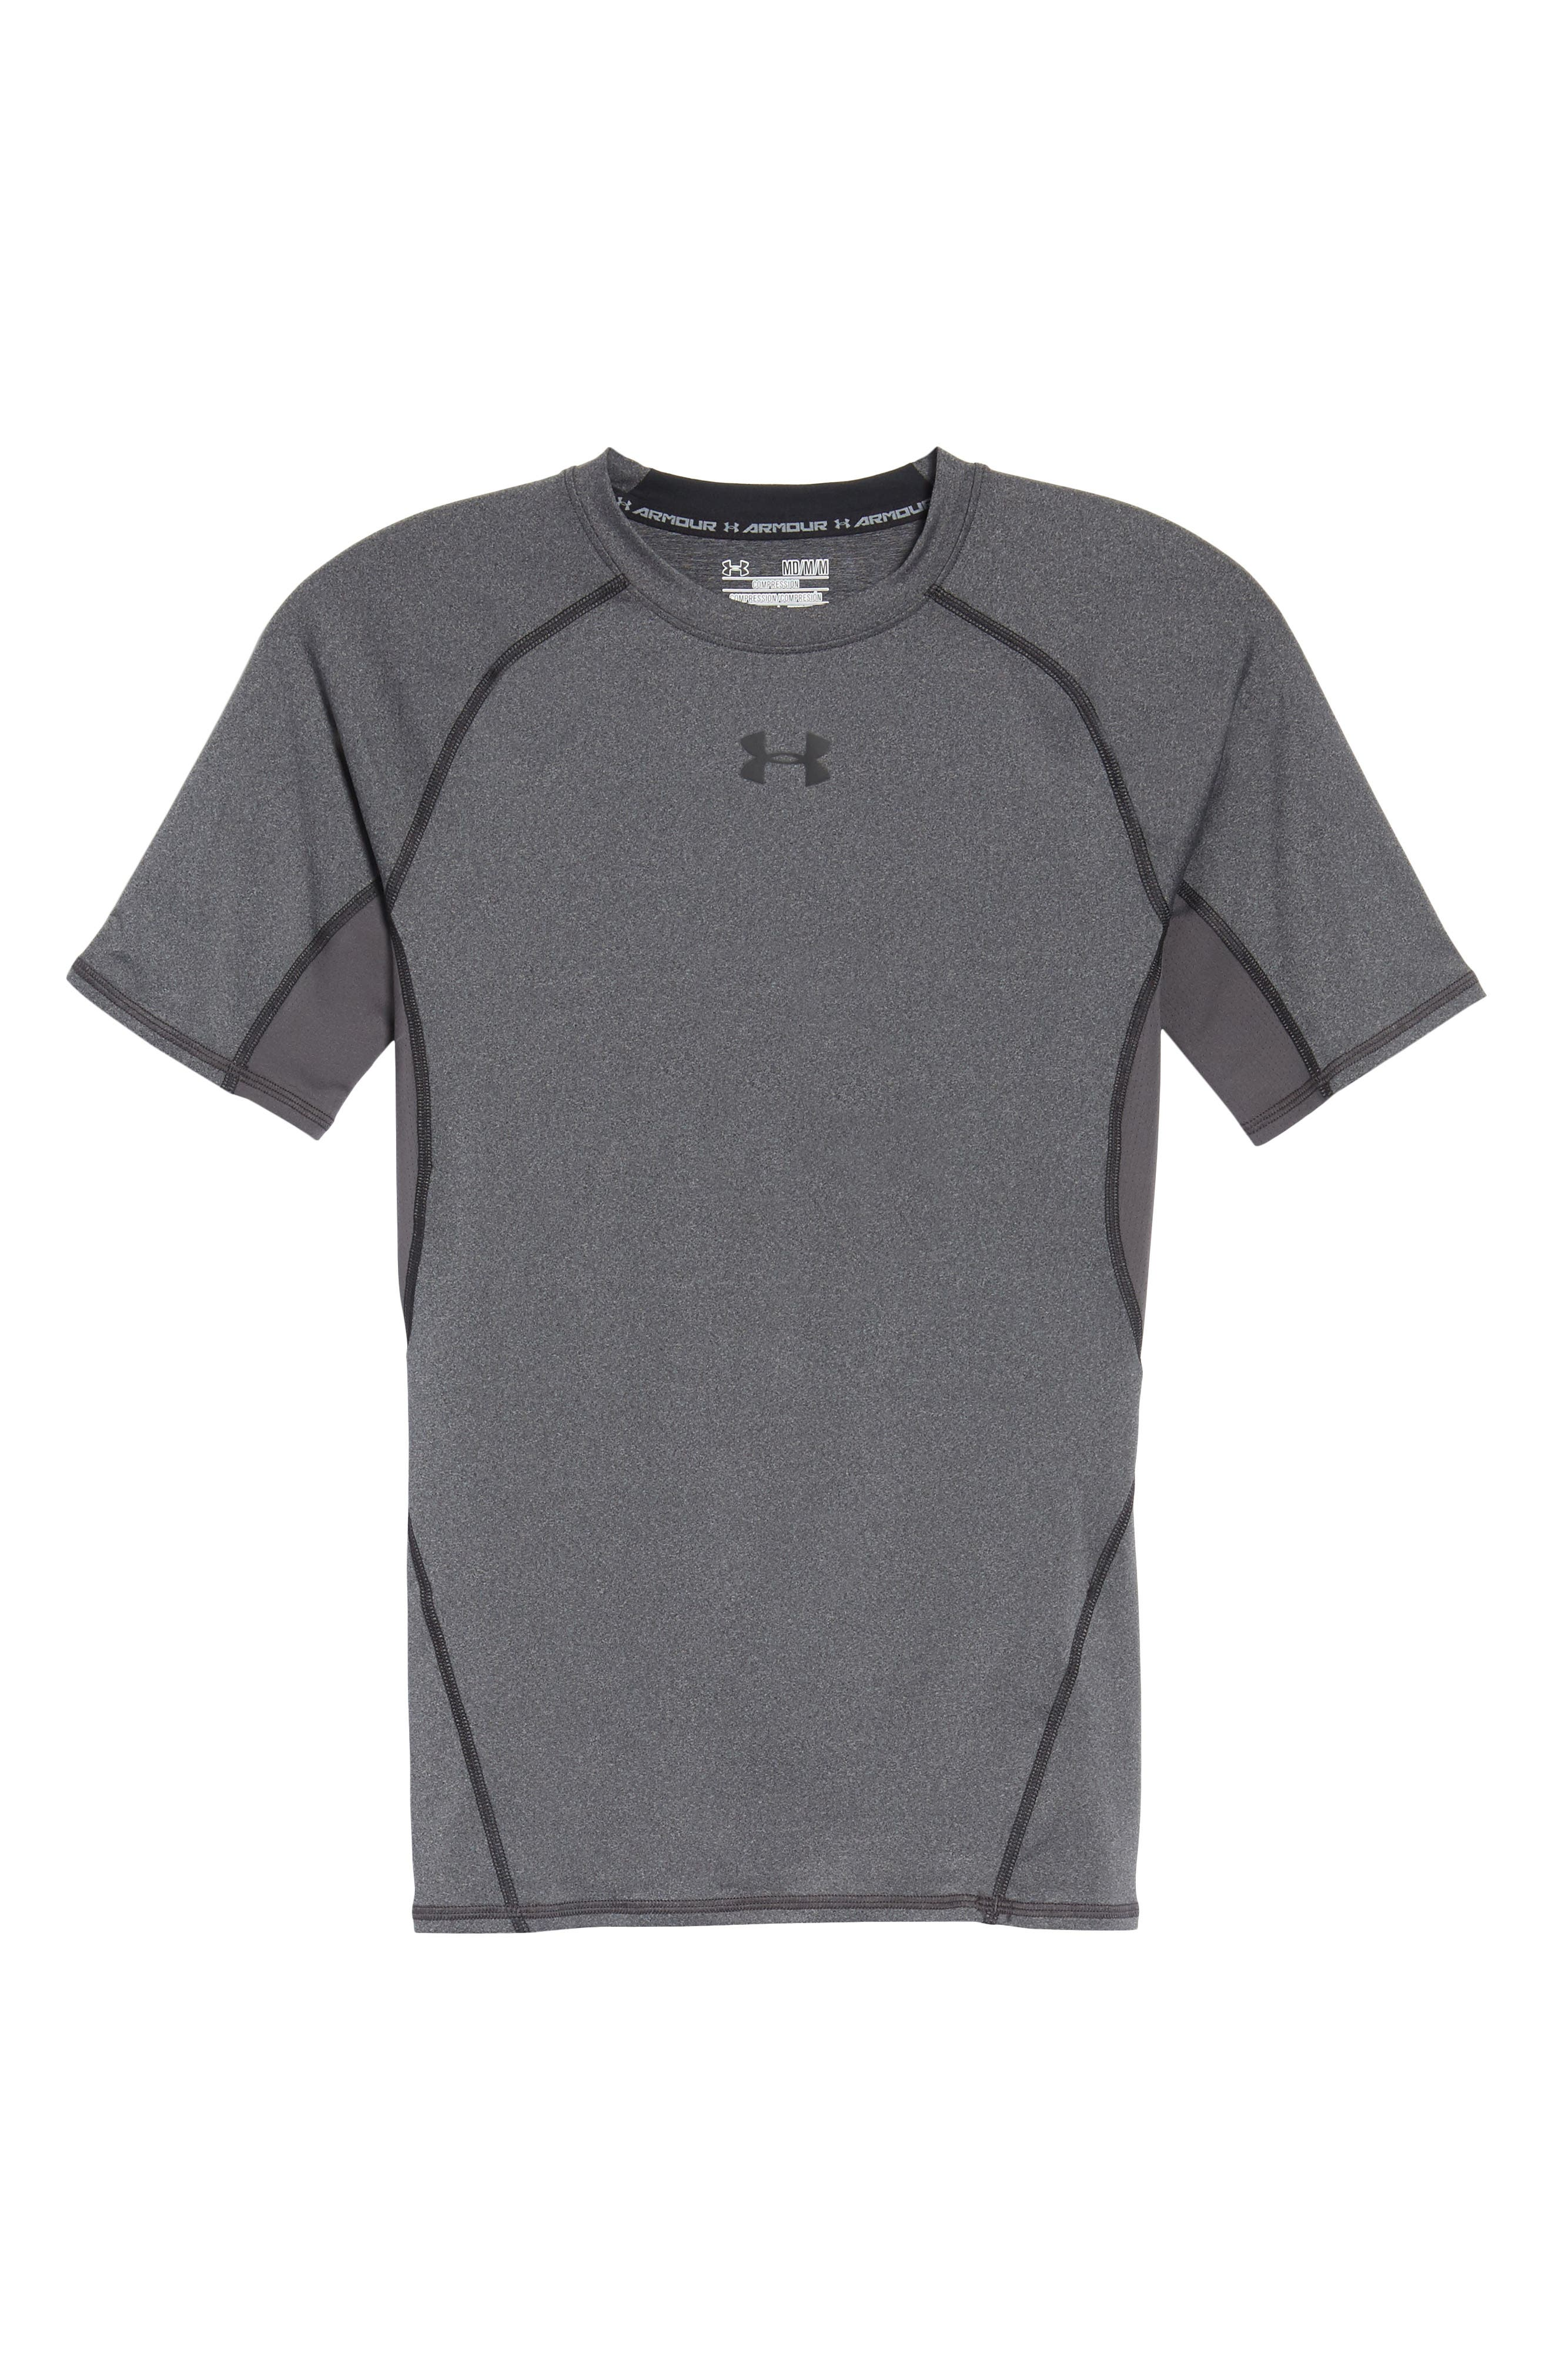 Alternate Image 1 Selected - Under Armour HeatGear® Compression Fit T-Shirt